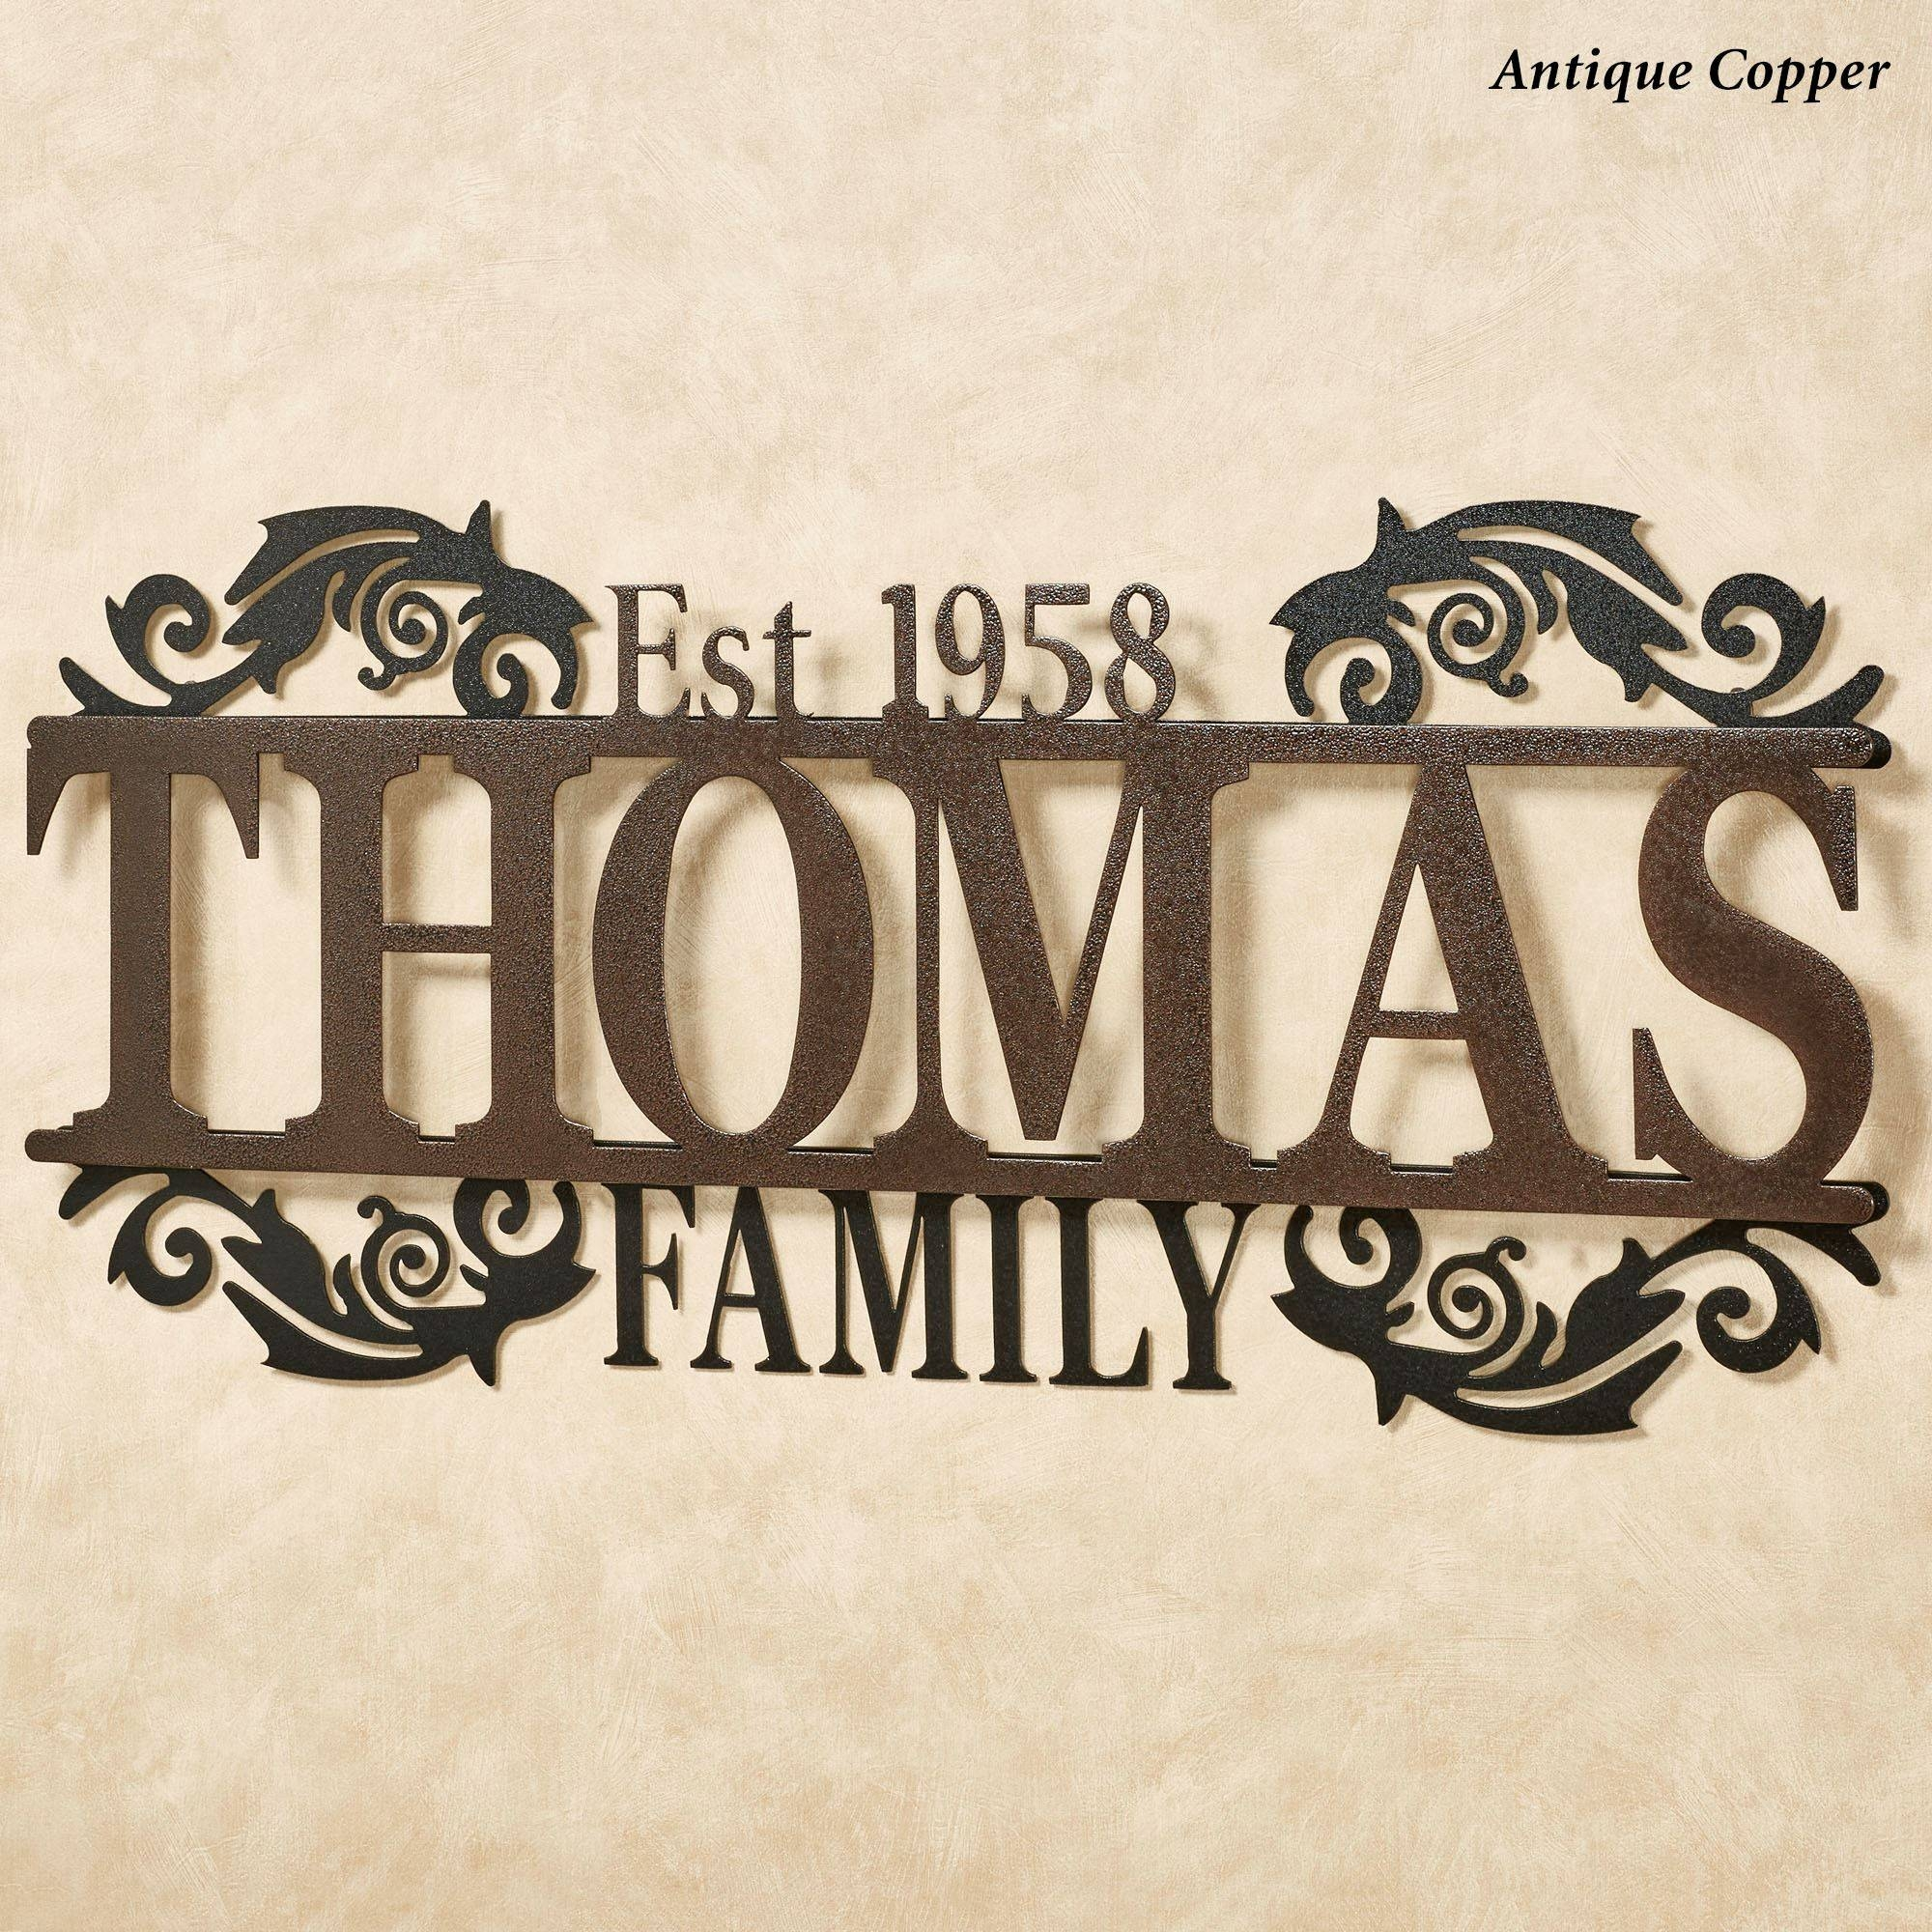 Legacy Family Established Year Personalized Metal Wall Art Sign Inside Latest Personalized Metal Wall Art (View 12 of 20)